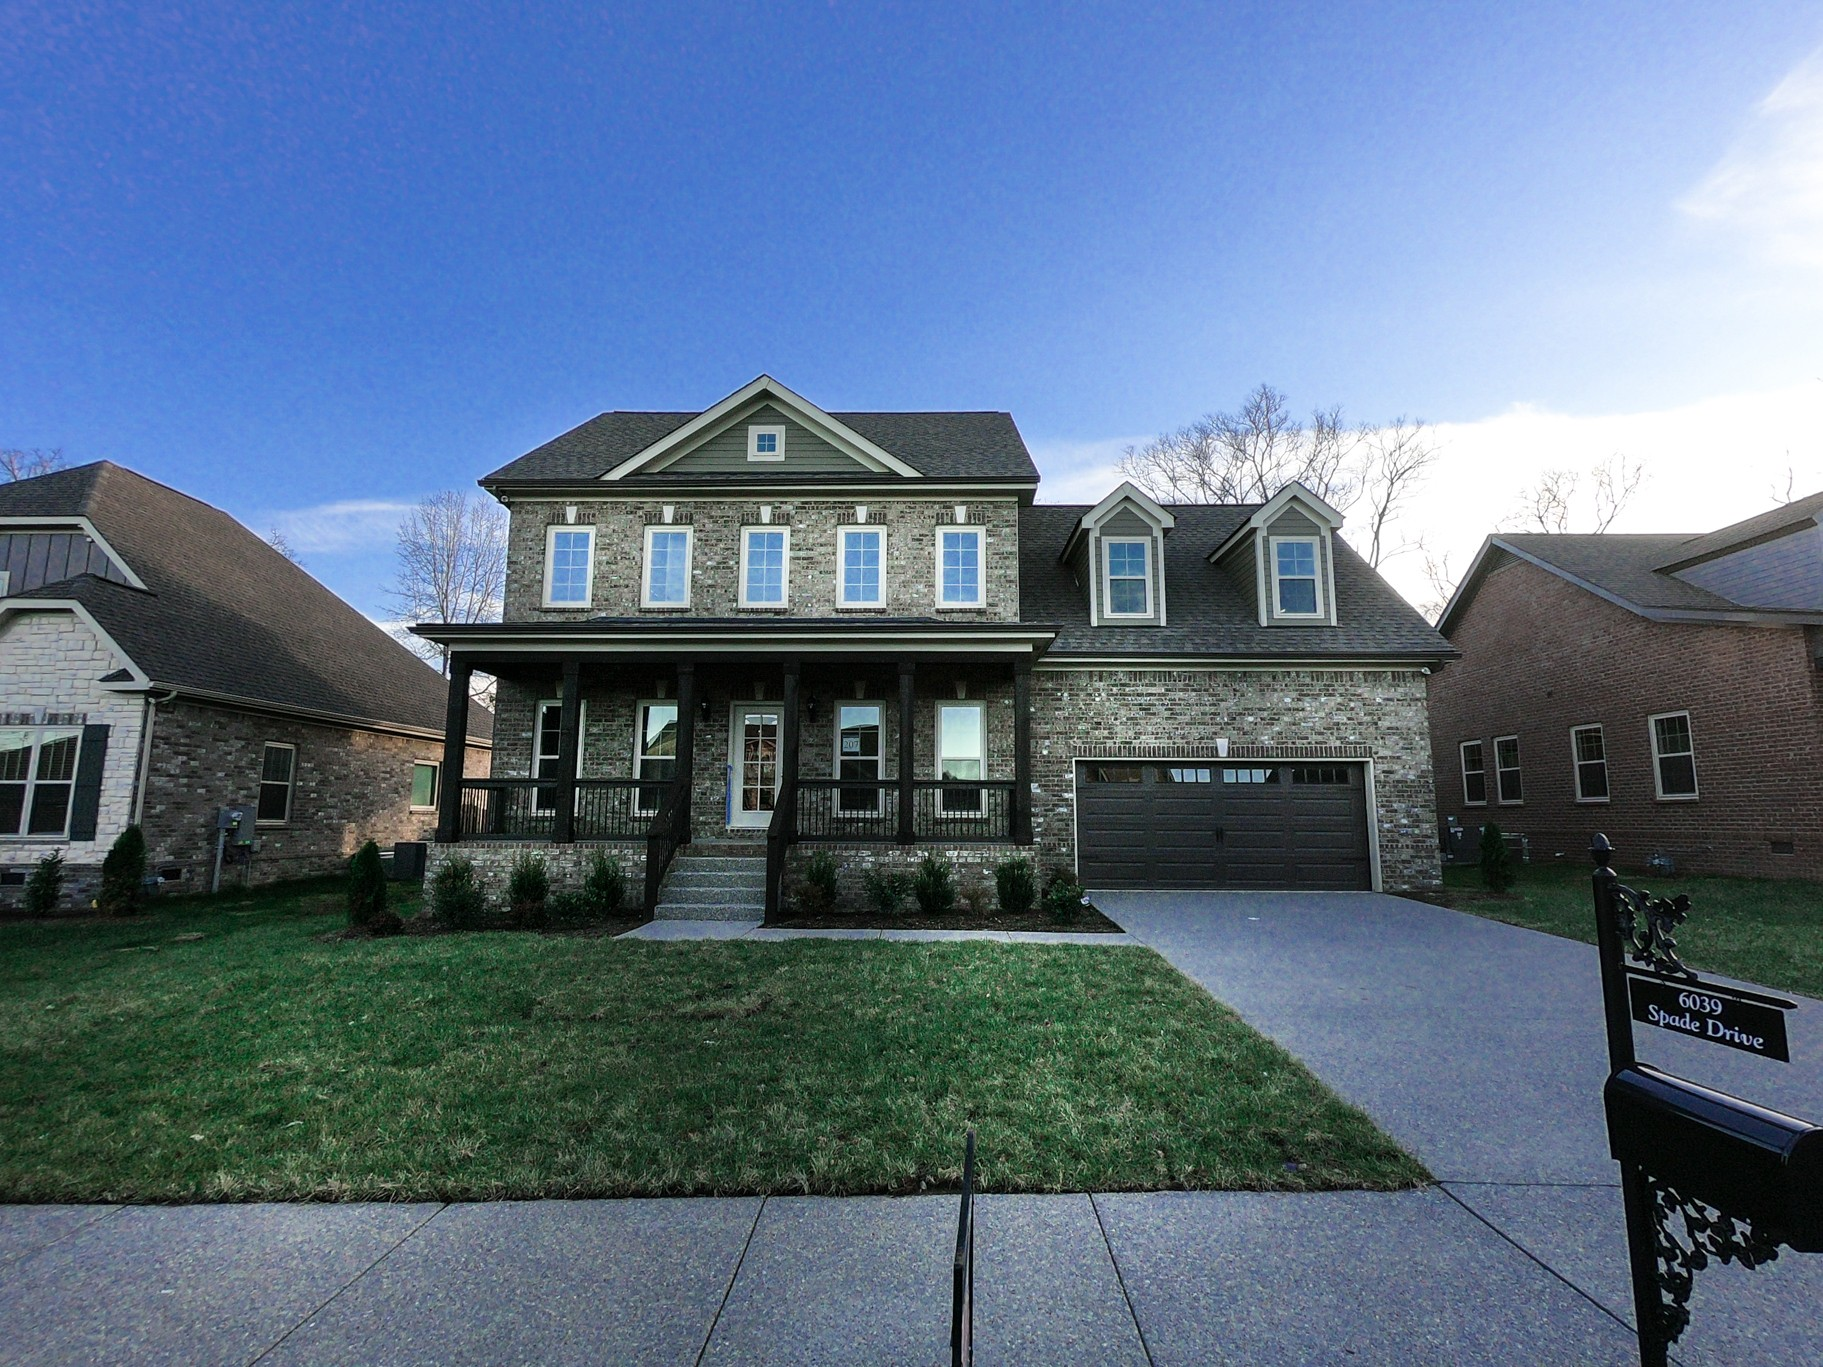 6039 Spade Dr. Lot# 207, Spring Hill, Tennessee